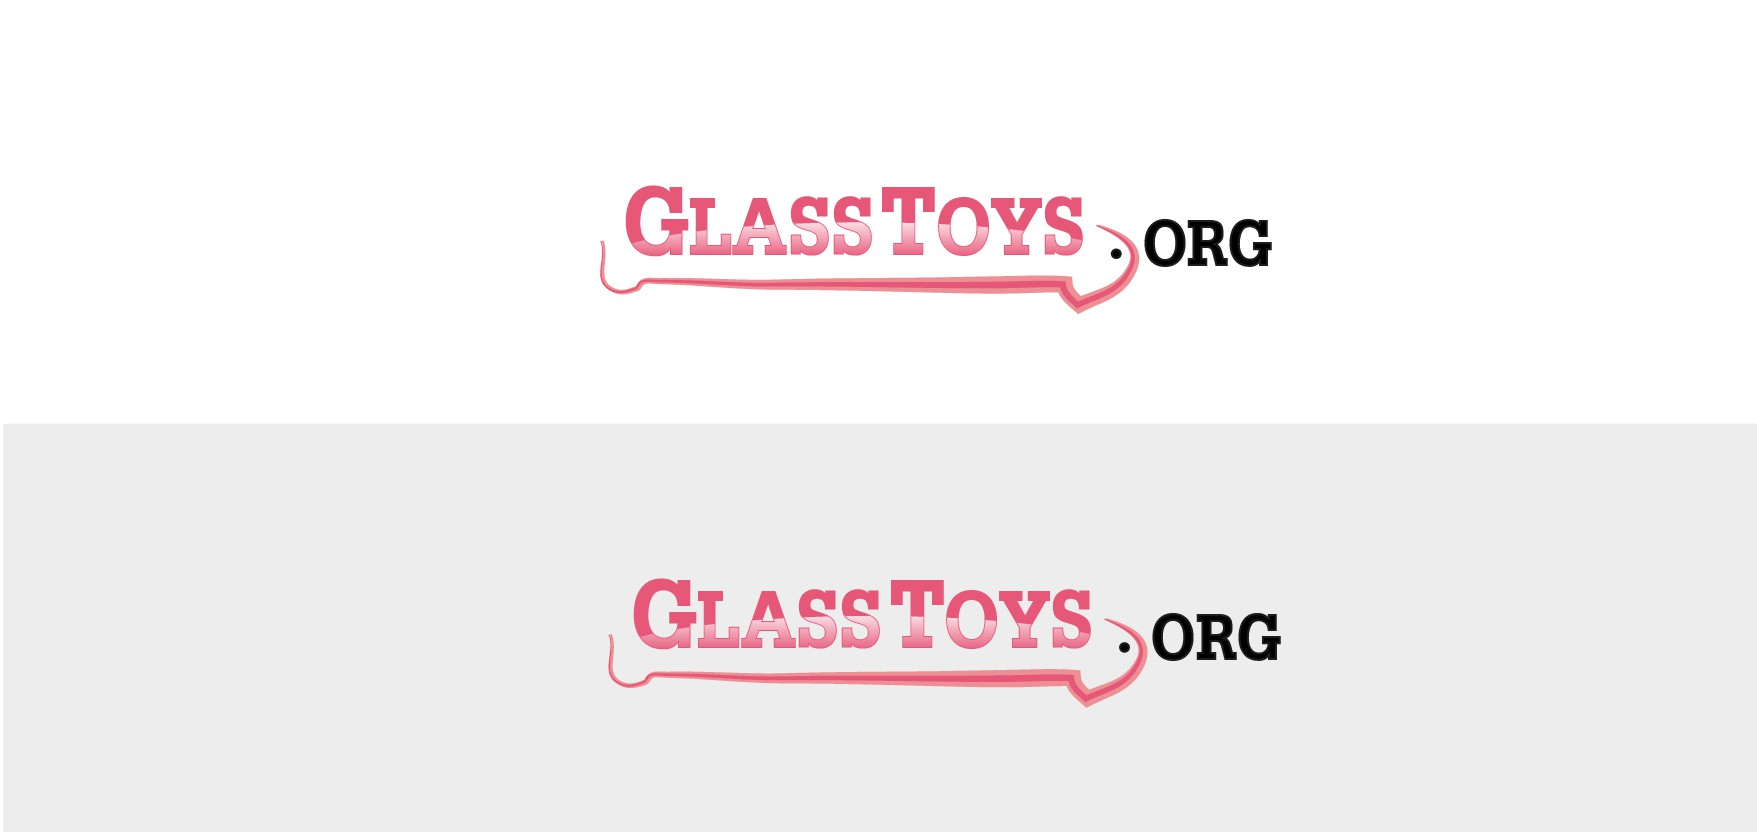 New logo wanted for GlassToys.org